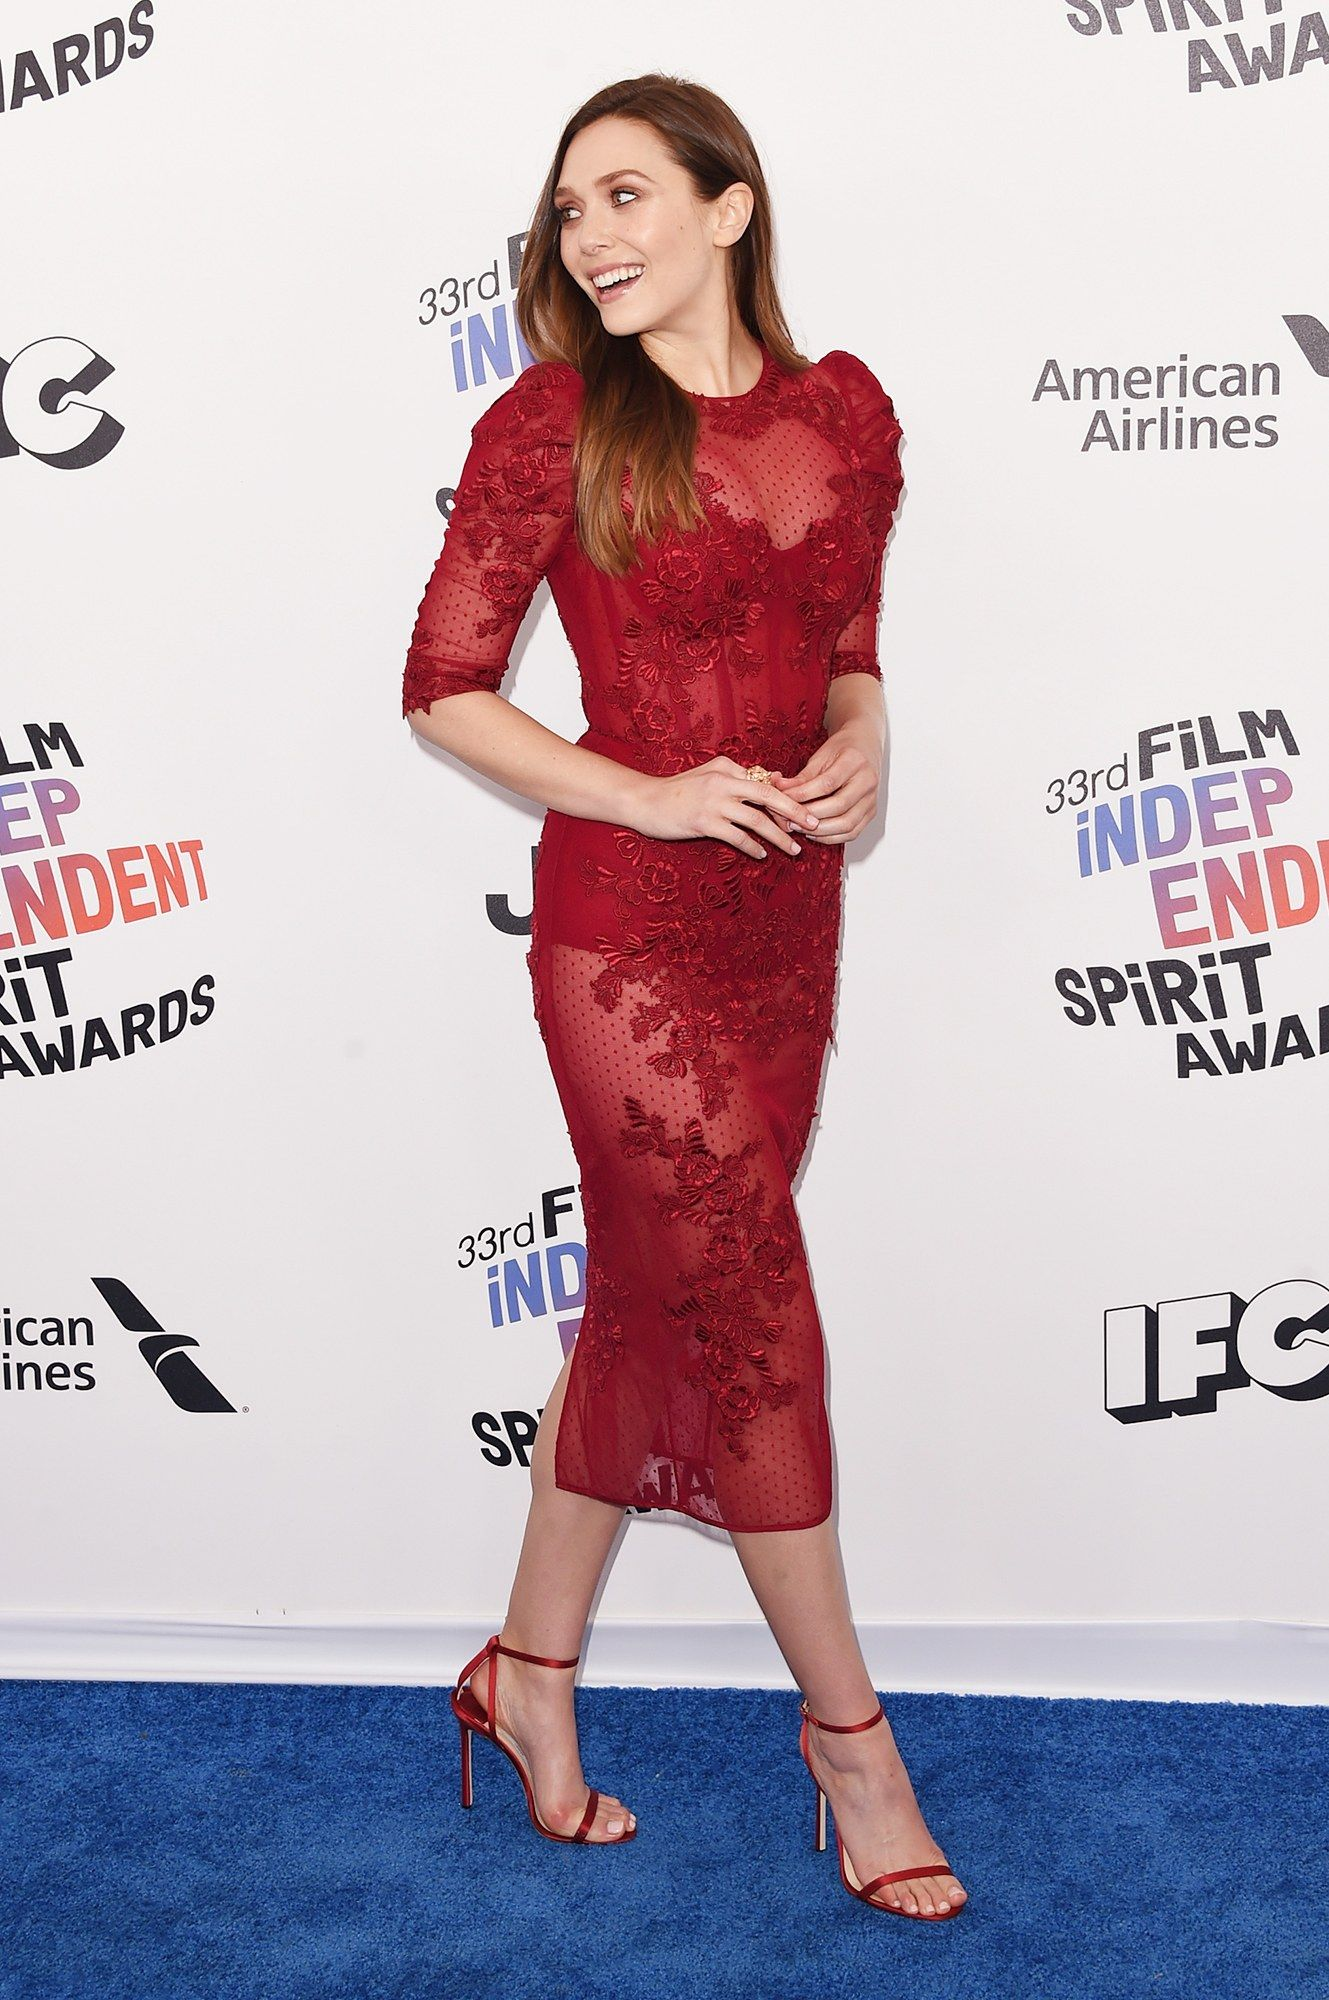 c8e7ac2428b 2018 Independent Spirit Awards  Elizabeth Olsen in Zuhair Murad ...